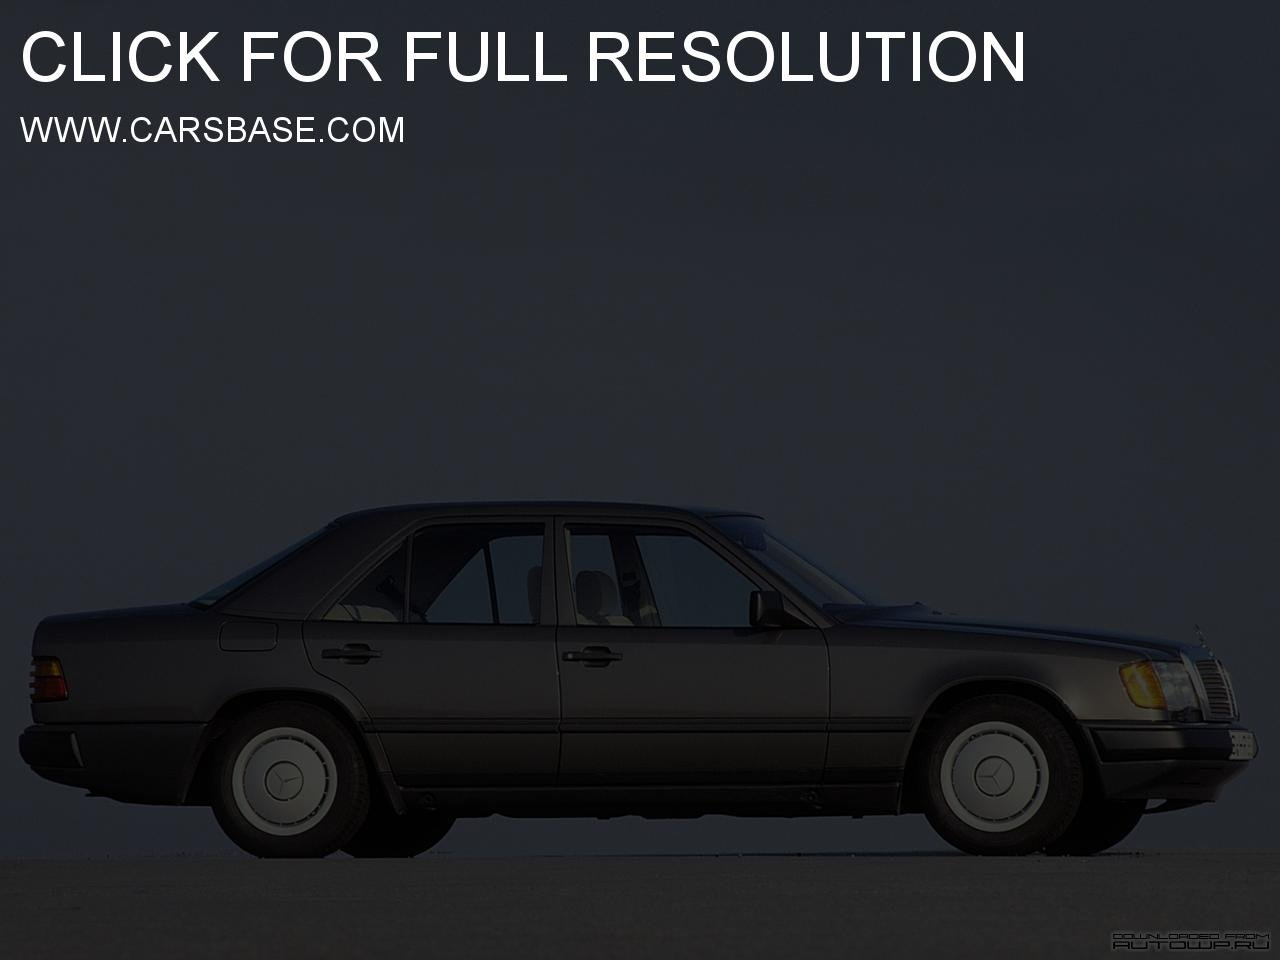 mercedes w124 images #13